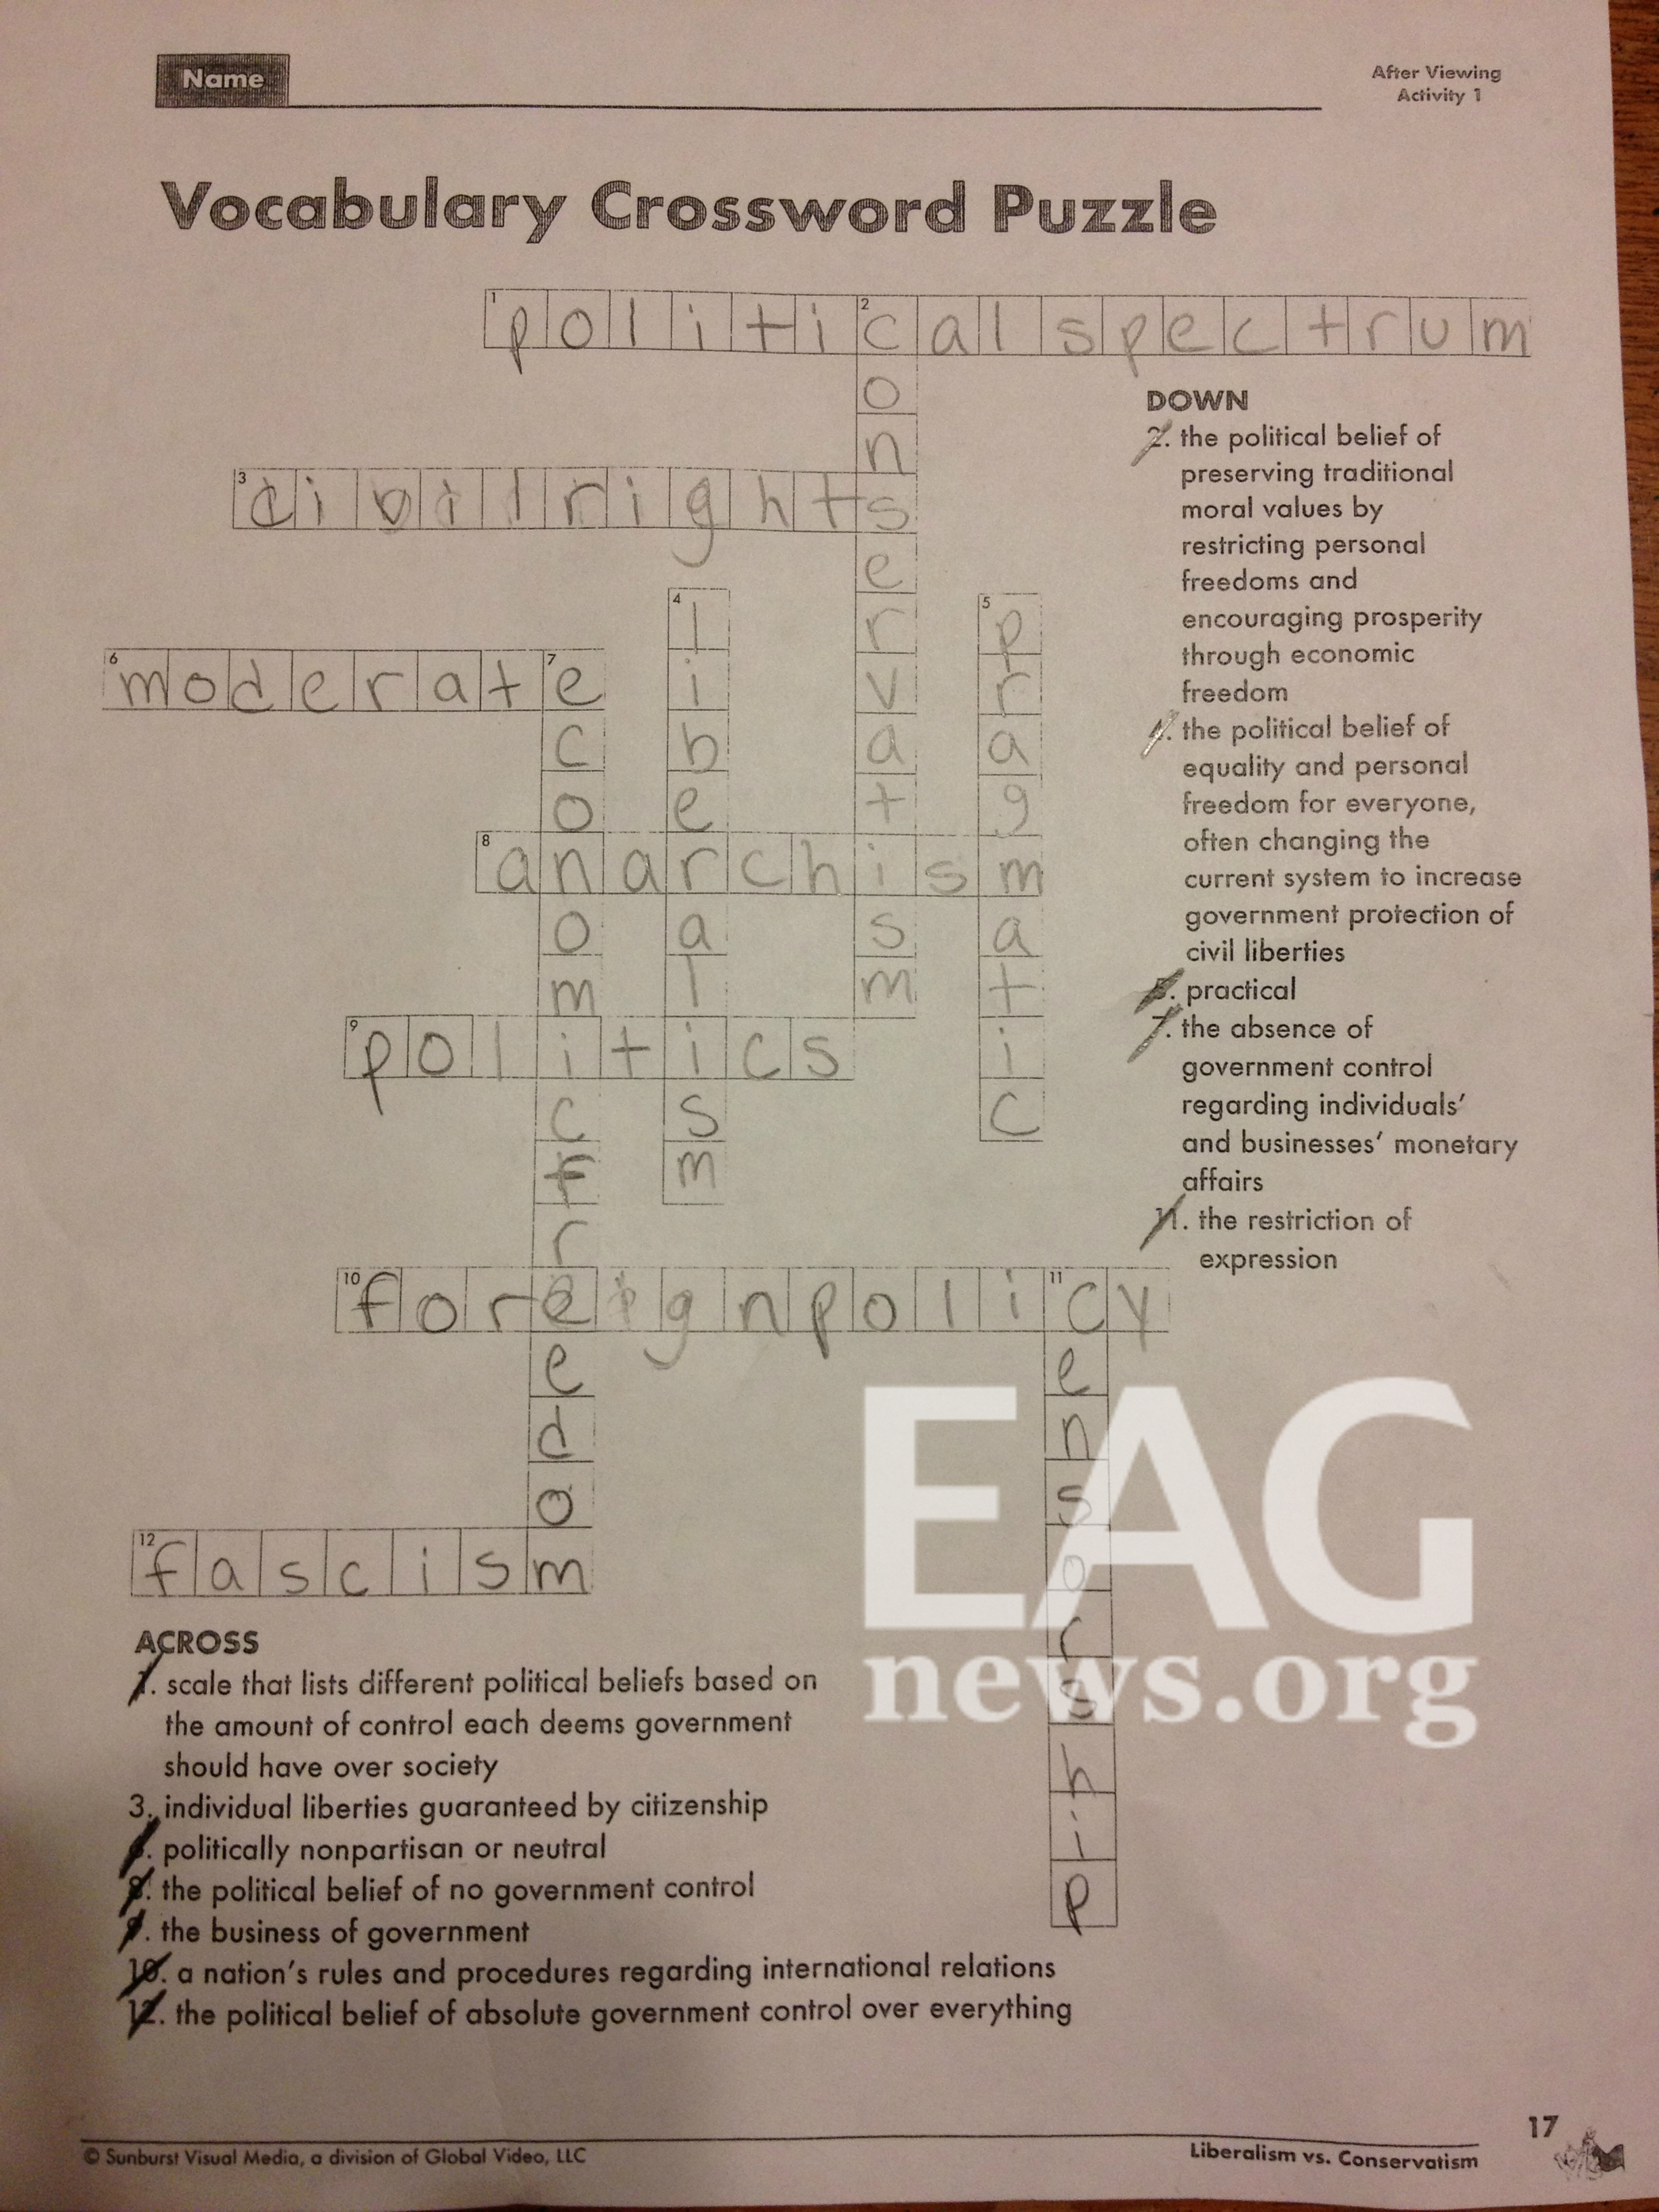 Message From Public School Crossword Puzzle Conservatism Restricts Personal Freedoms